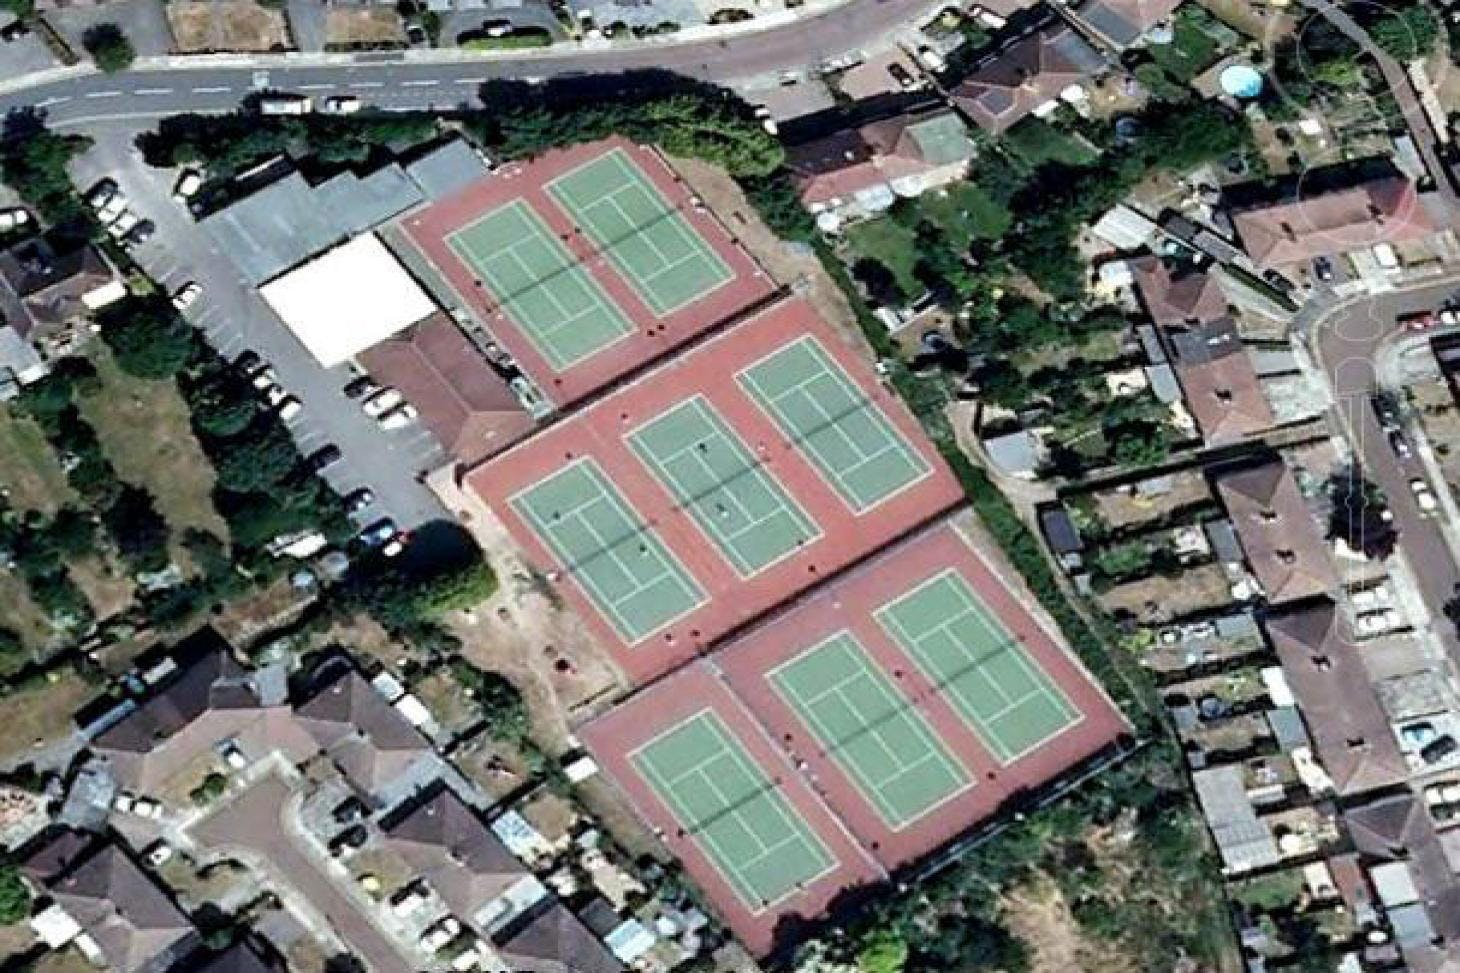 The Bexley Lawn Tennis, Squash & Racketball Club Outdoor | Hard (macadam) tennis court